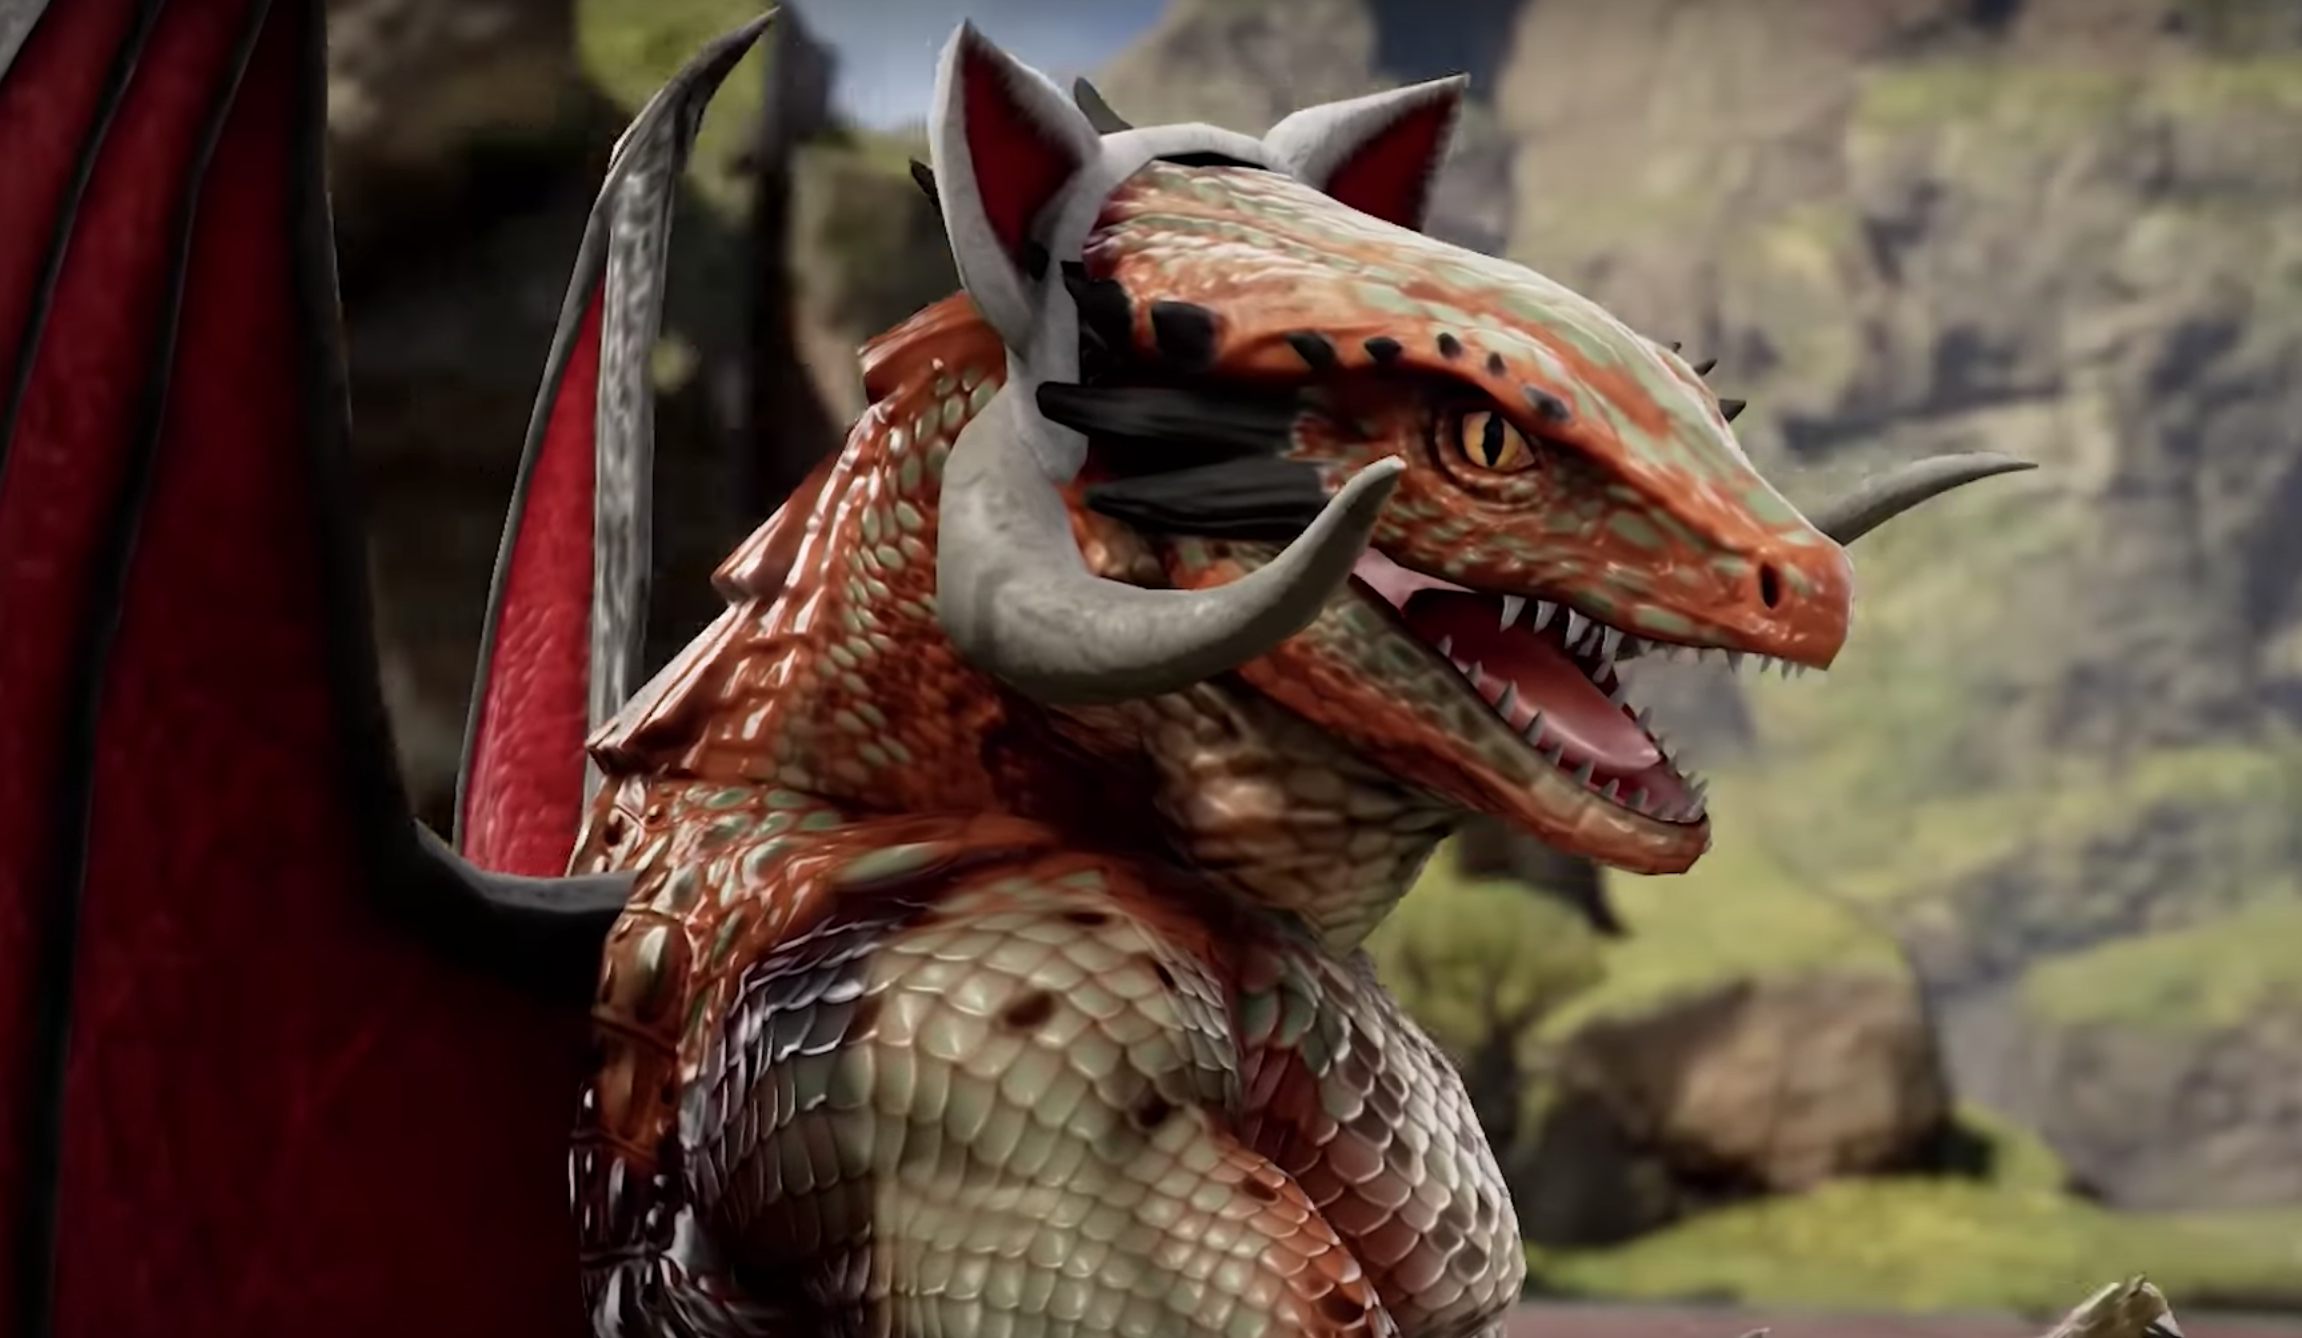 The Soulcalibur 6 community designed its own character and here's the monstrous result